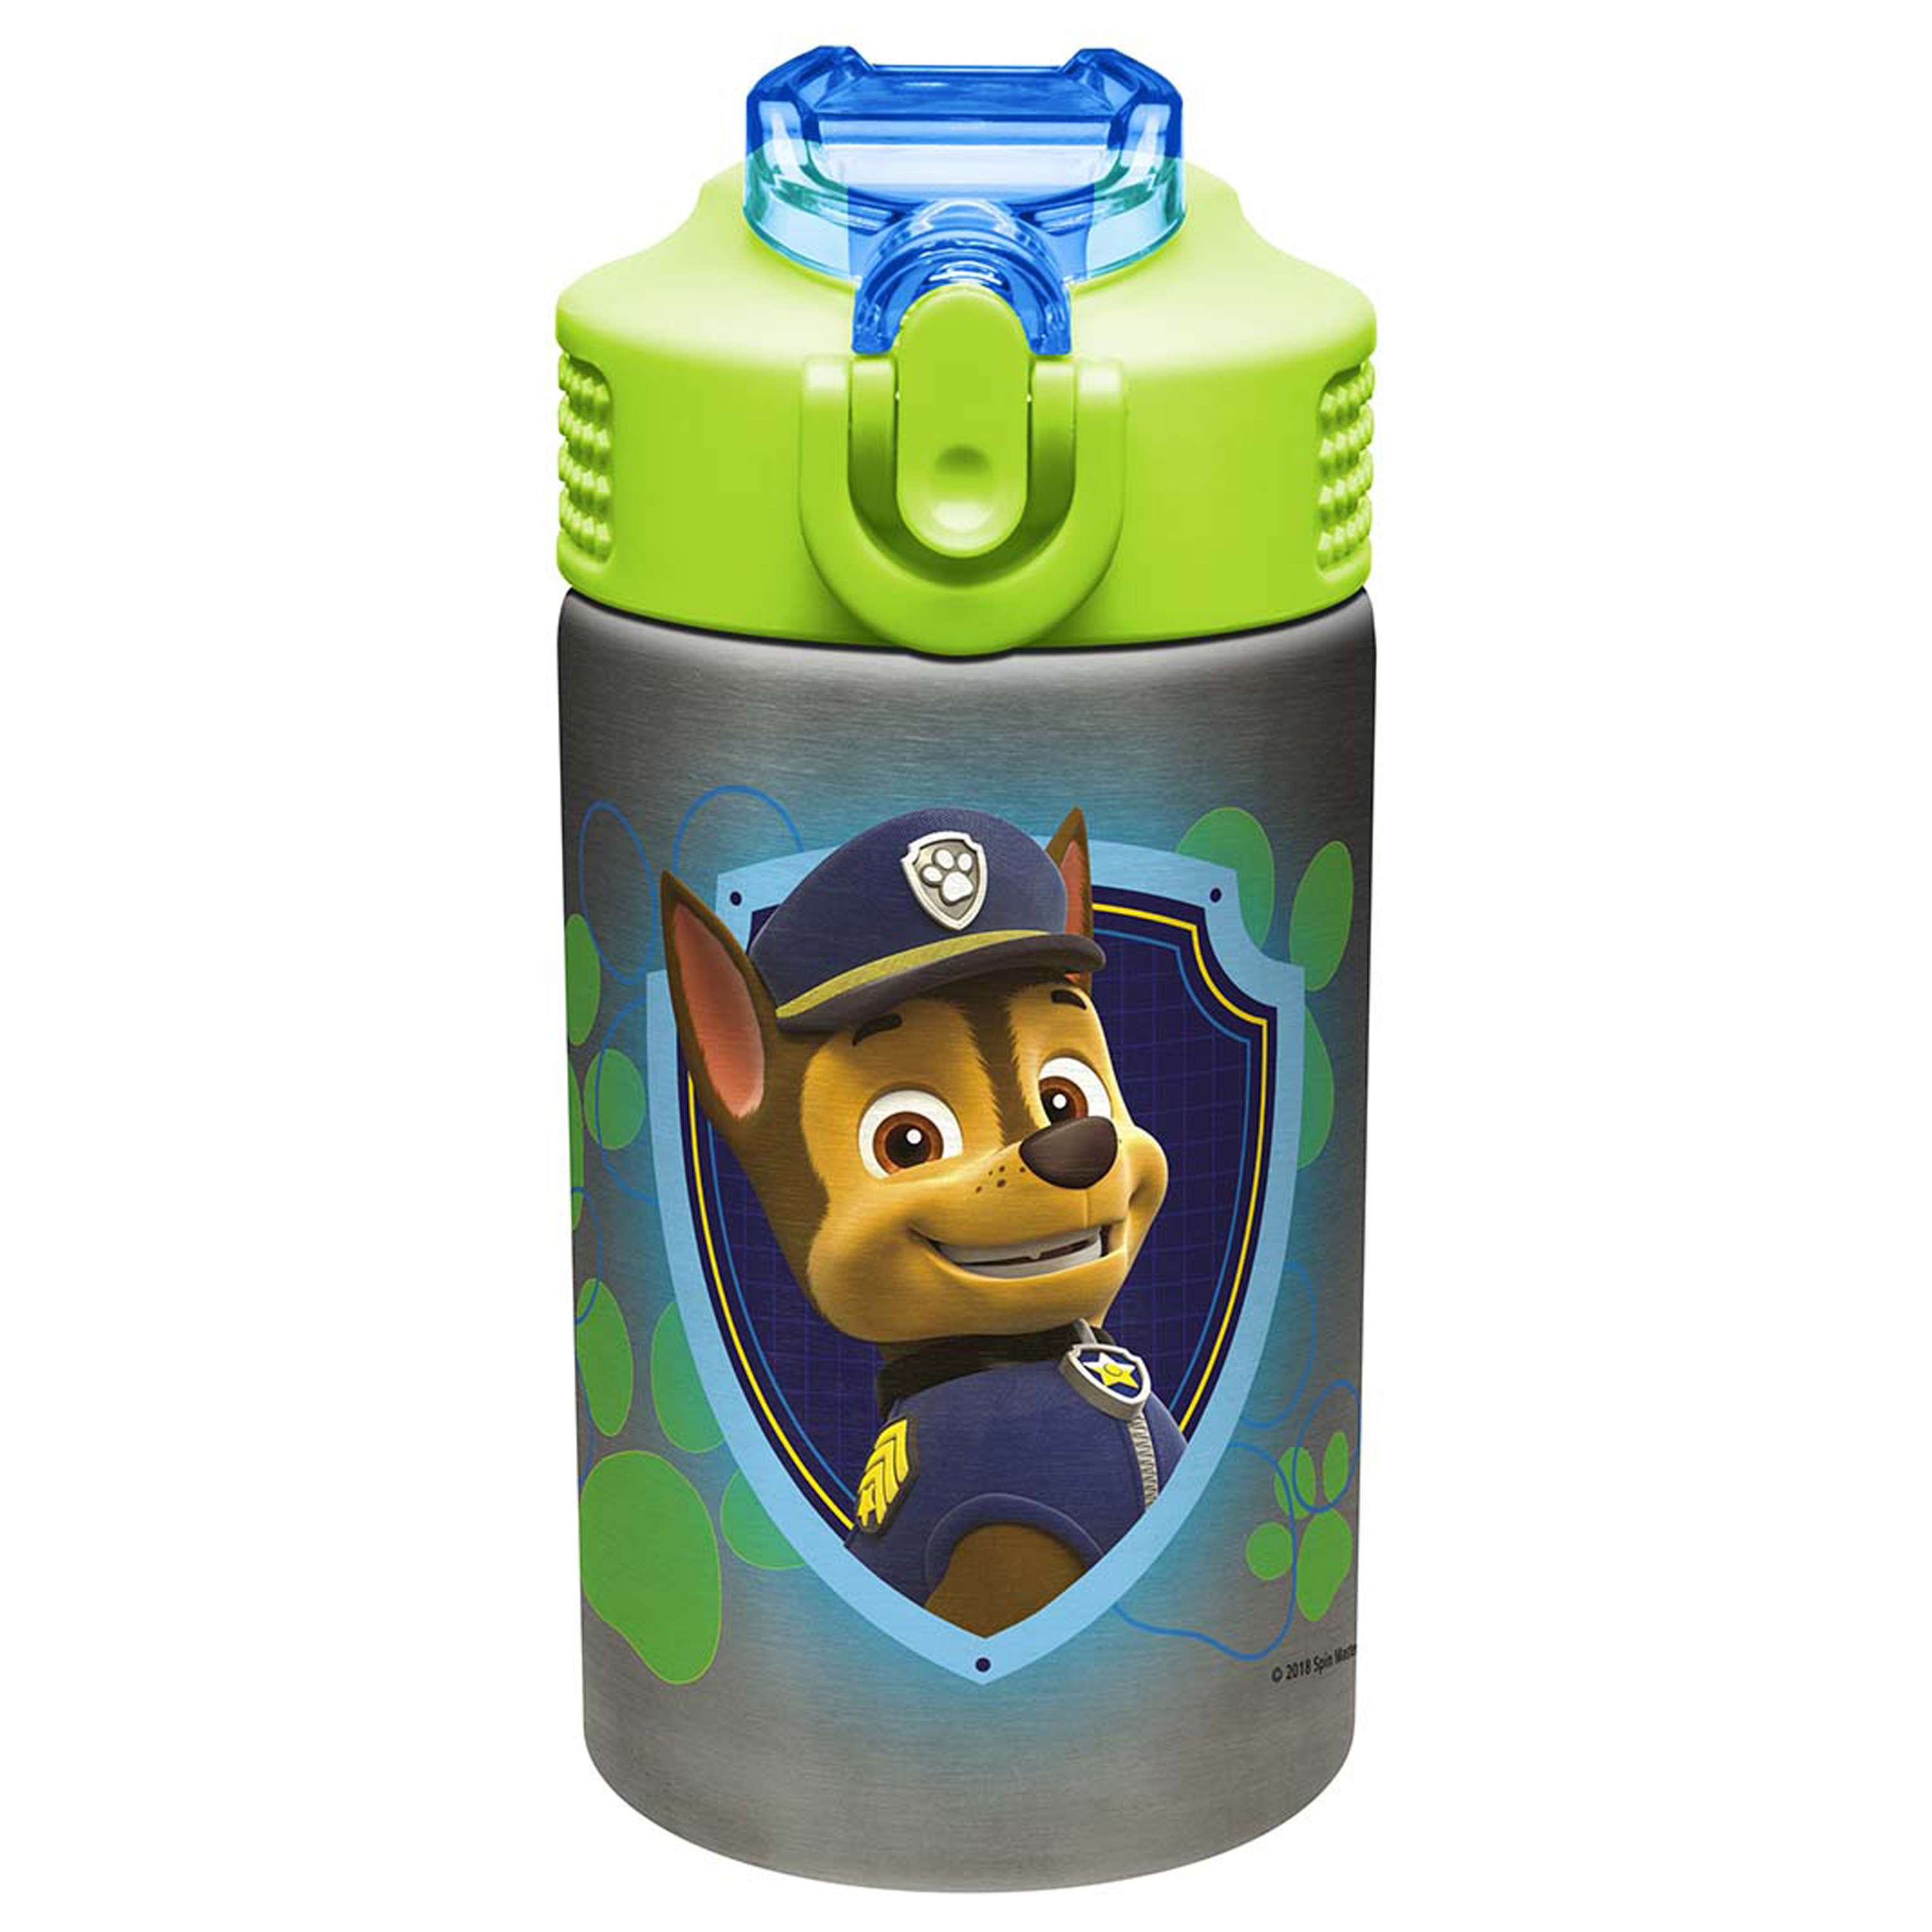 Paw Patrol 15.5 ounce Water Bottle, Chase and Marshall slideshow image 2